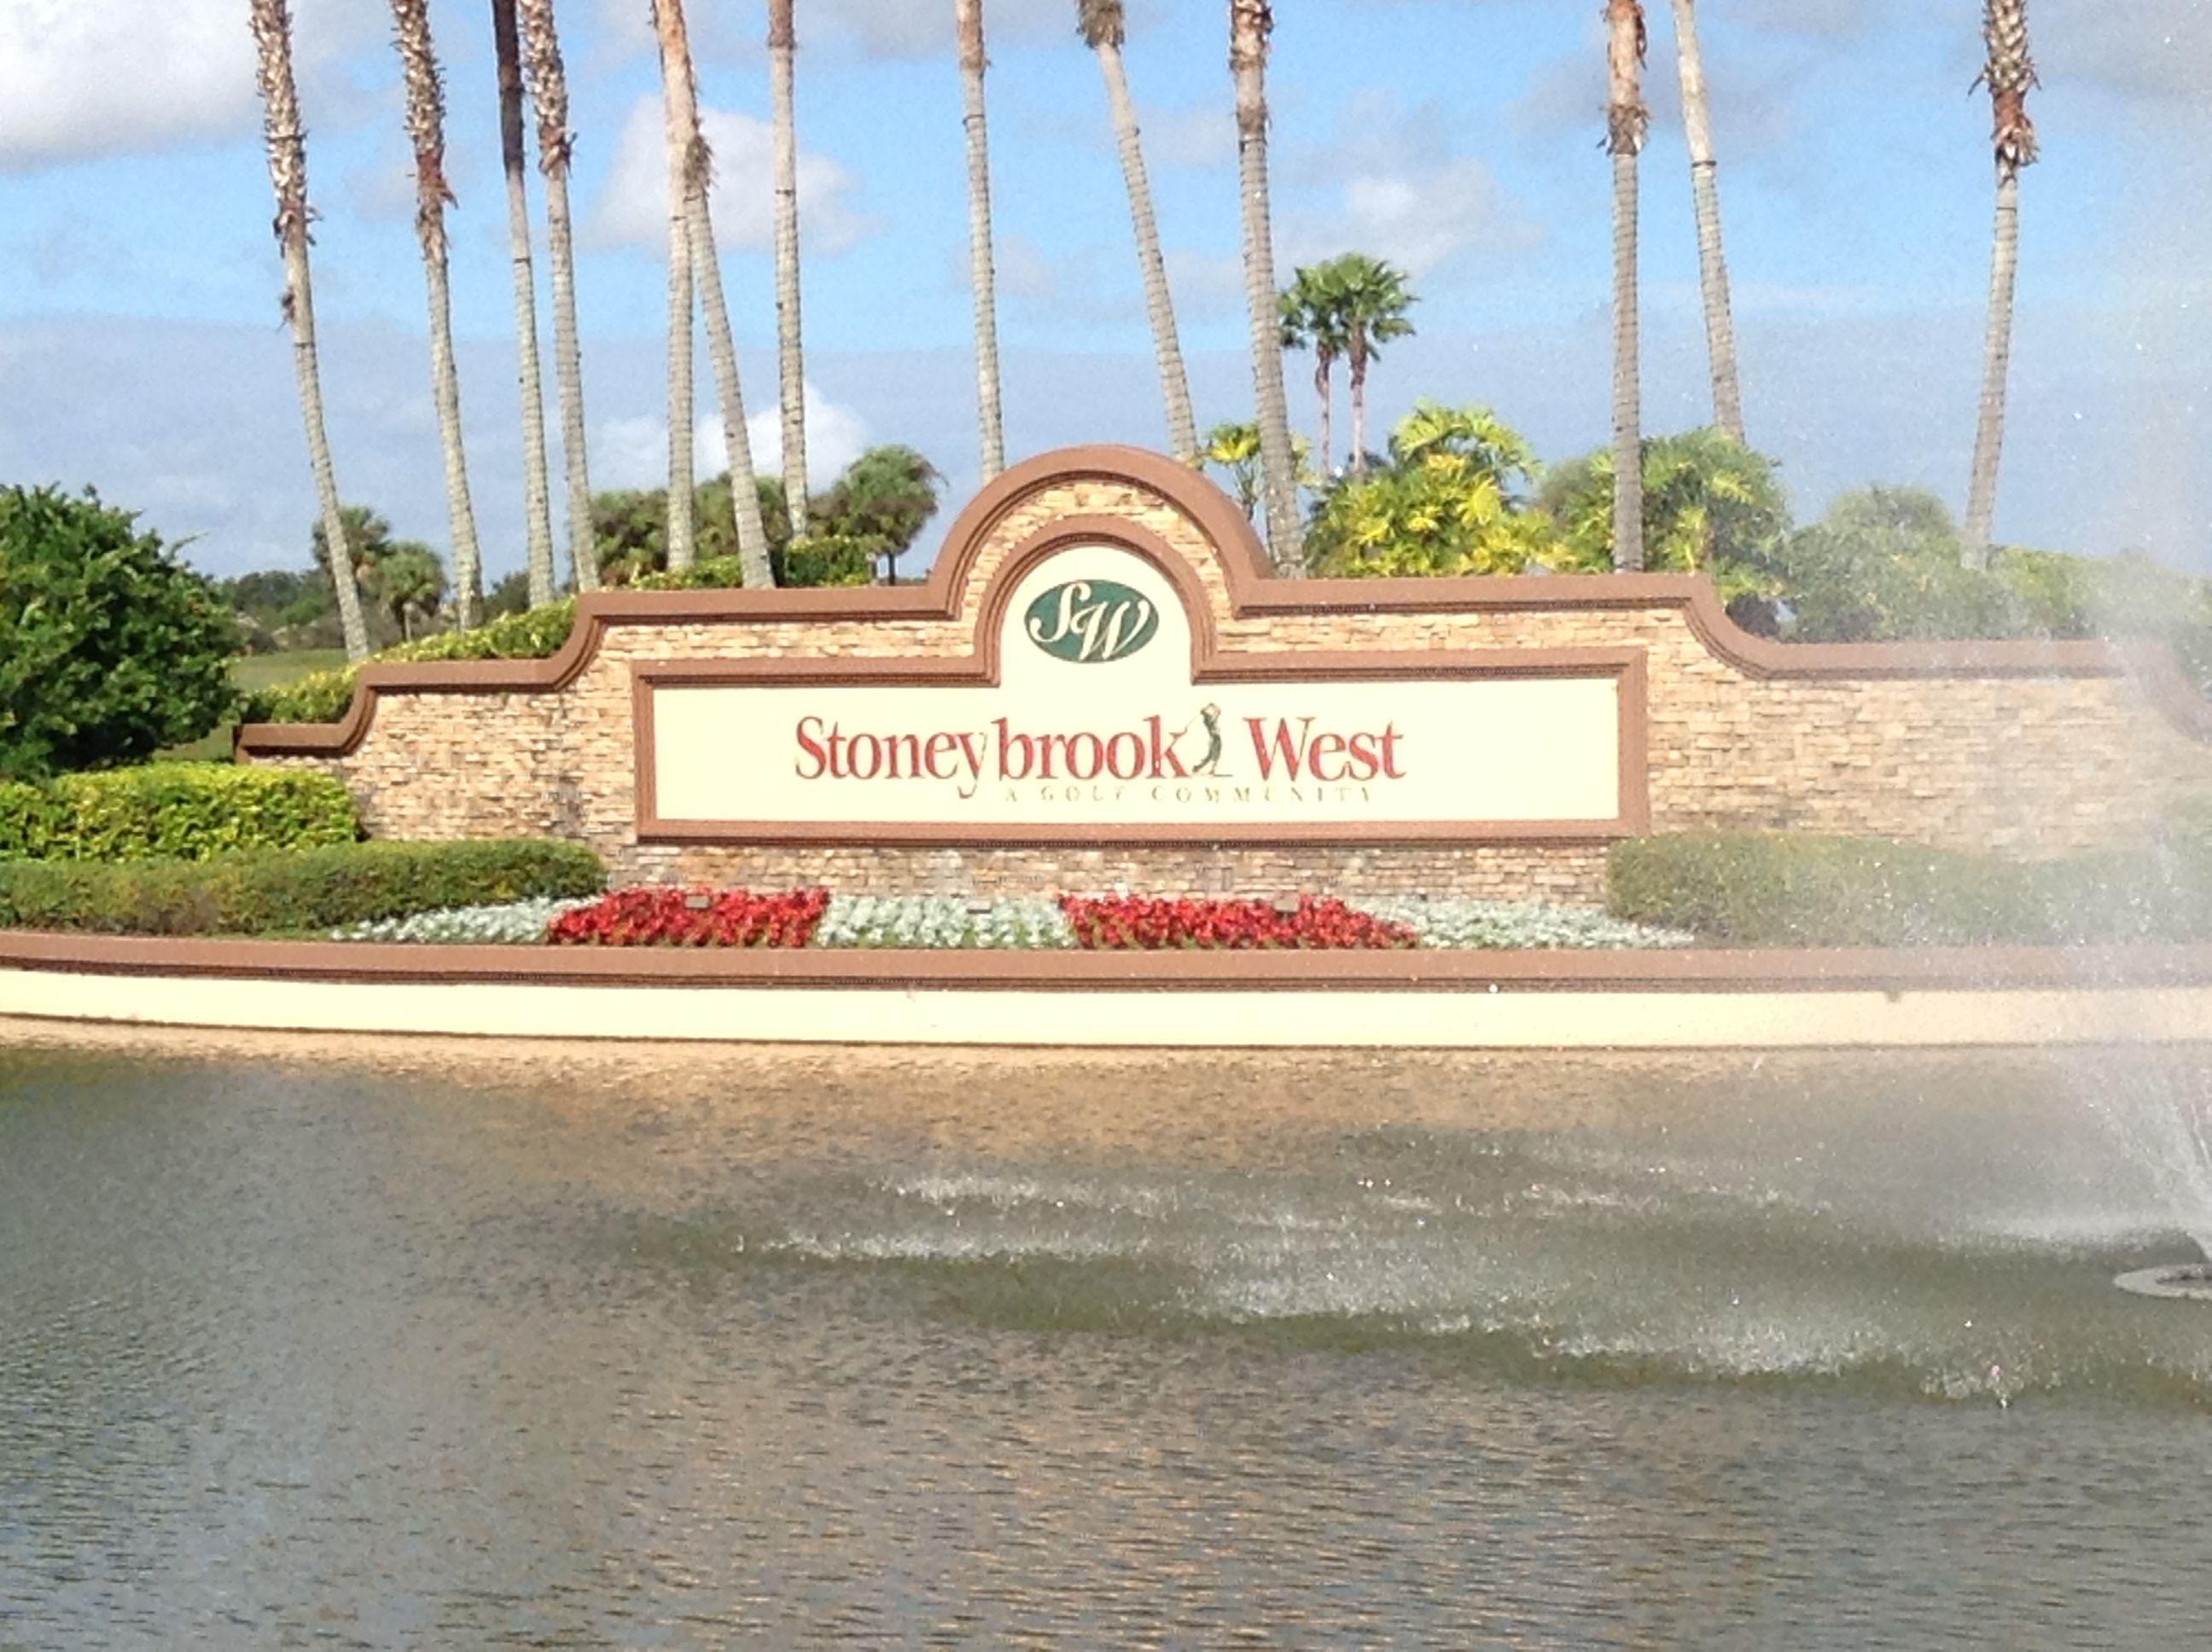 stoneybrook west is gated golf course communited located in